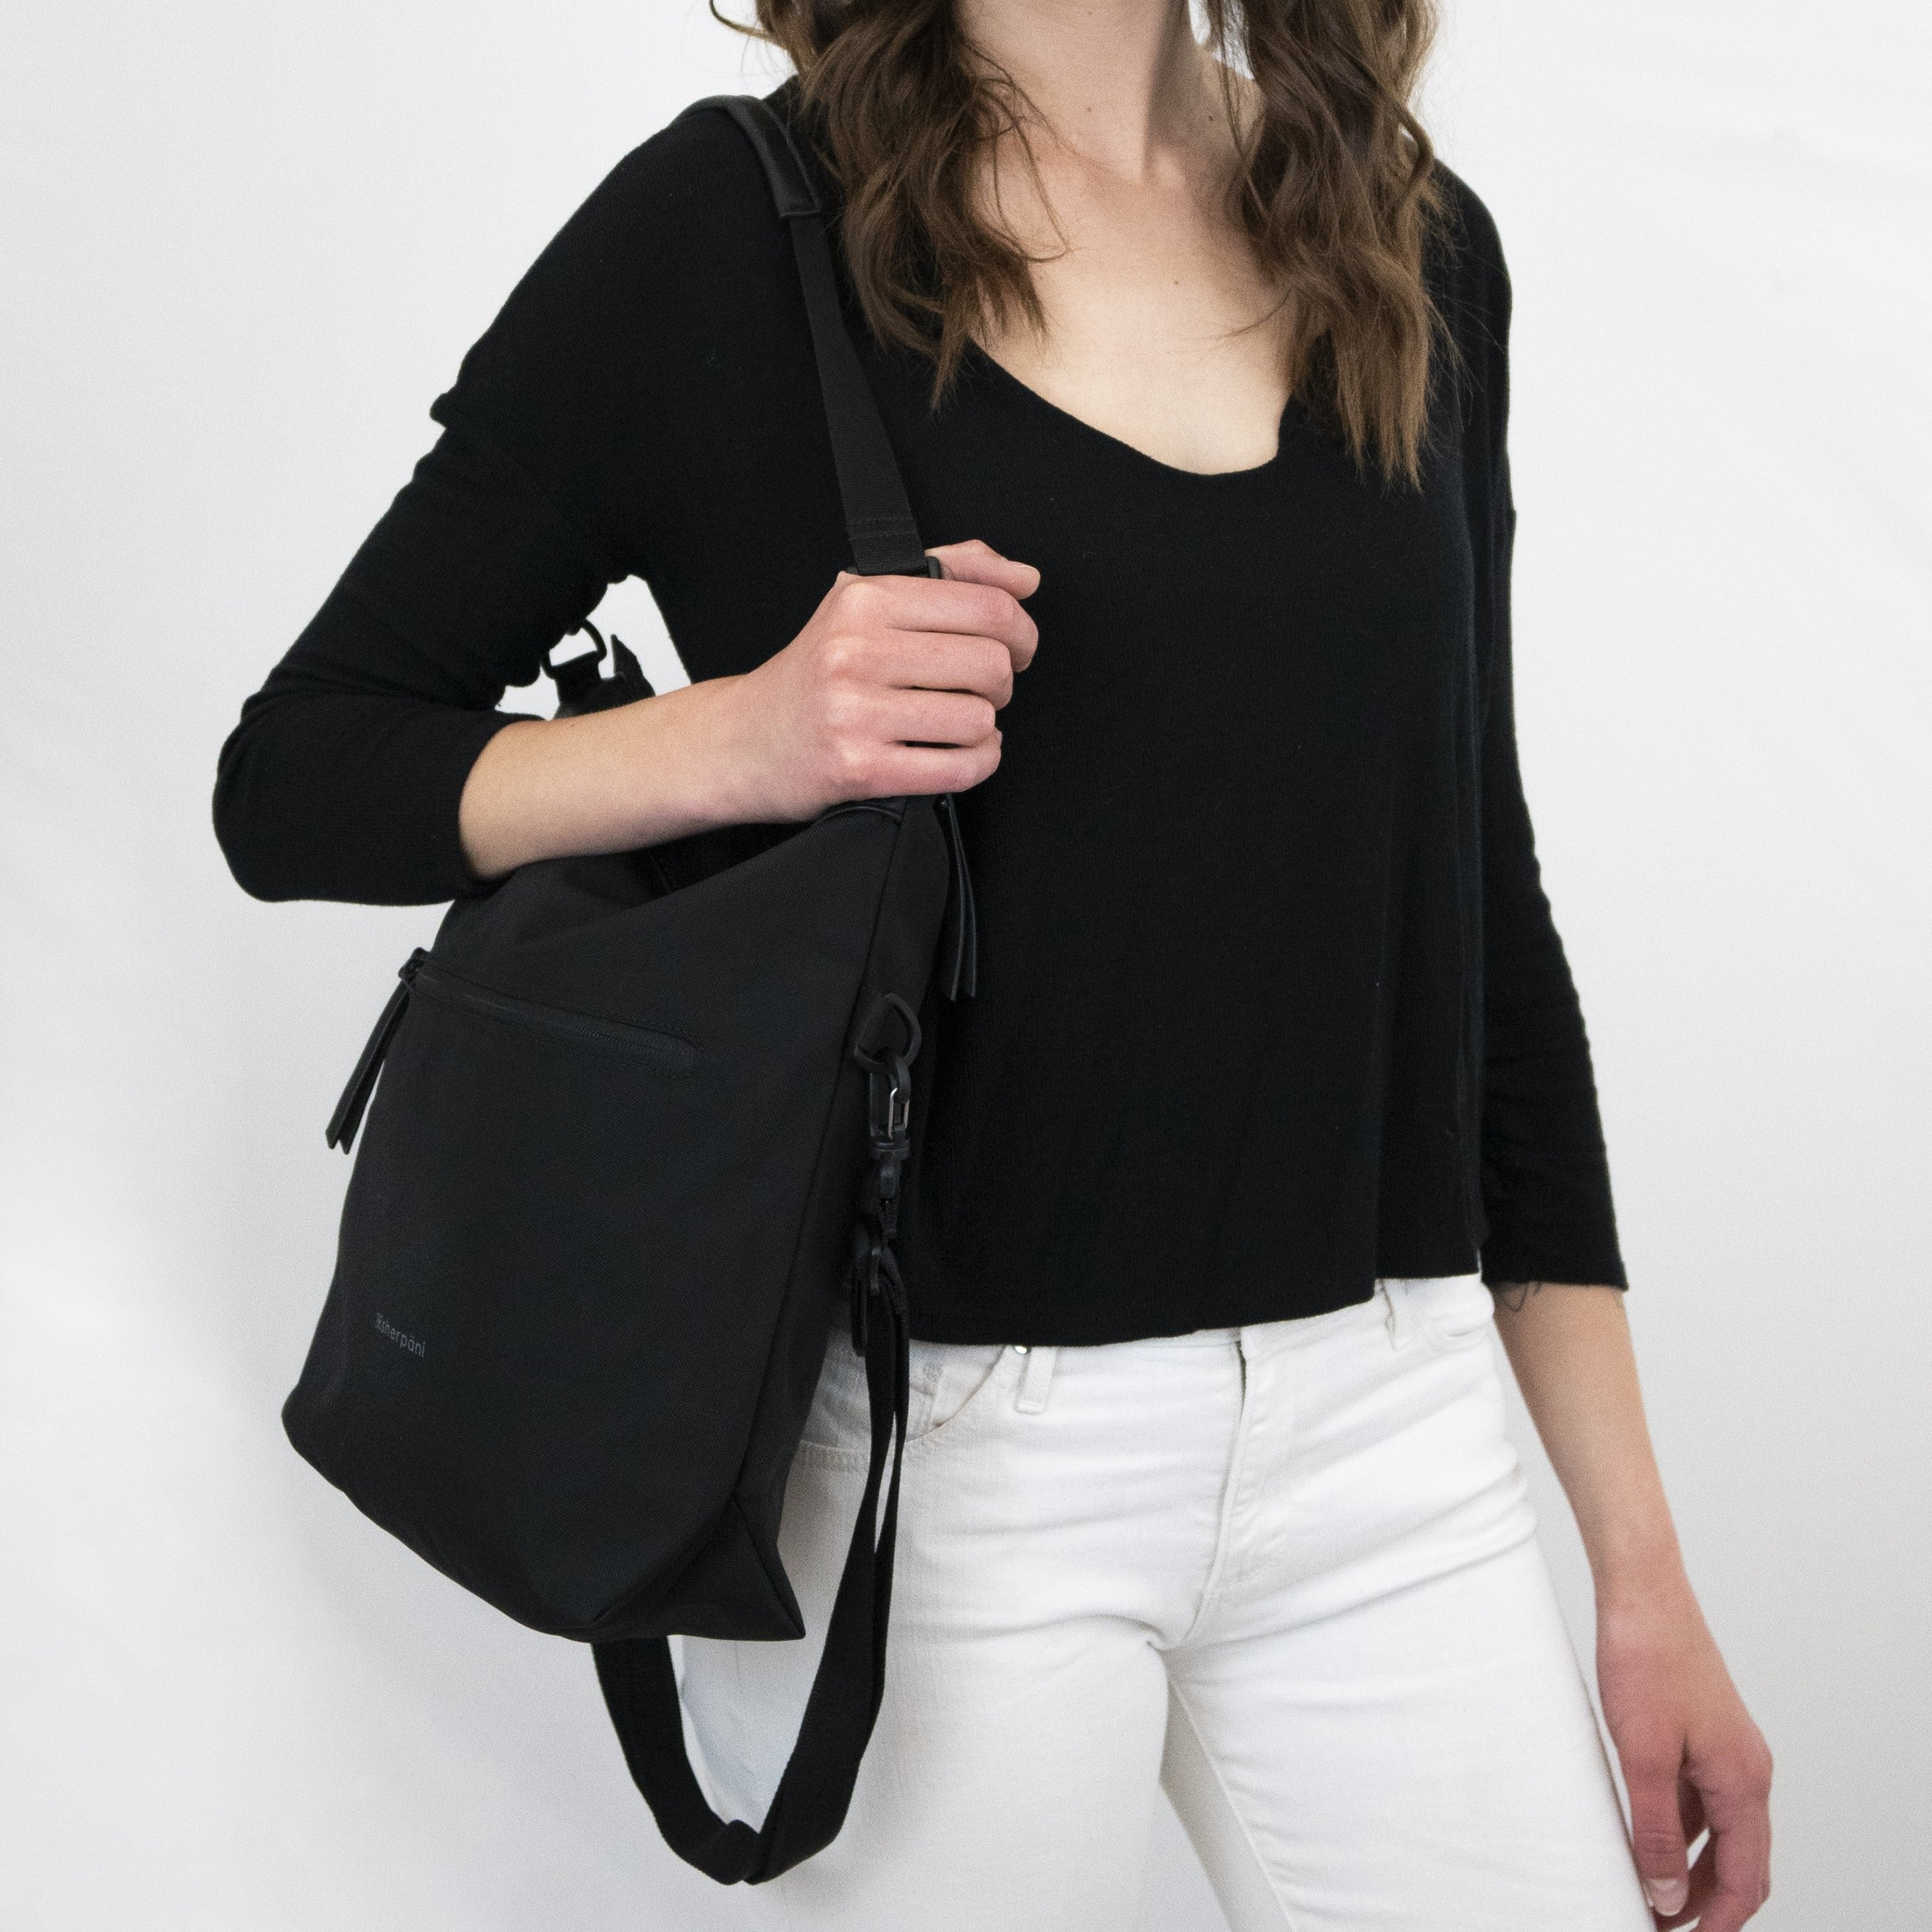 Black Anti Theft Reversible Crossbody (worn as shoulder purse) with anti-theft features